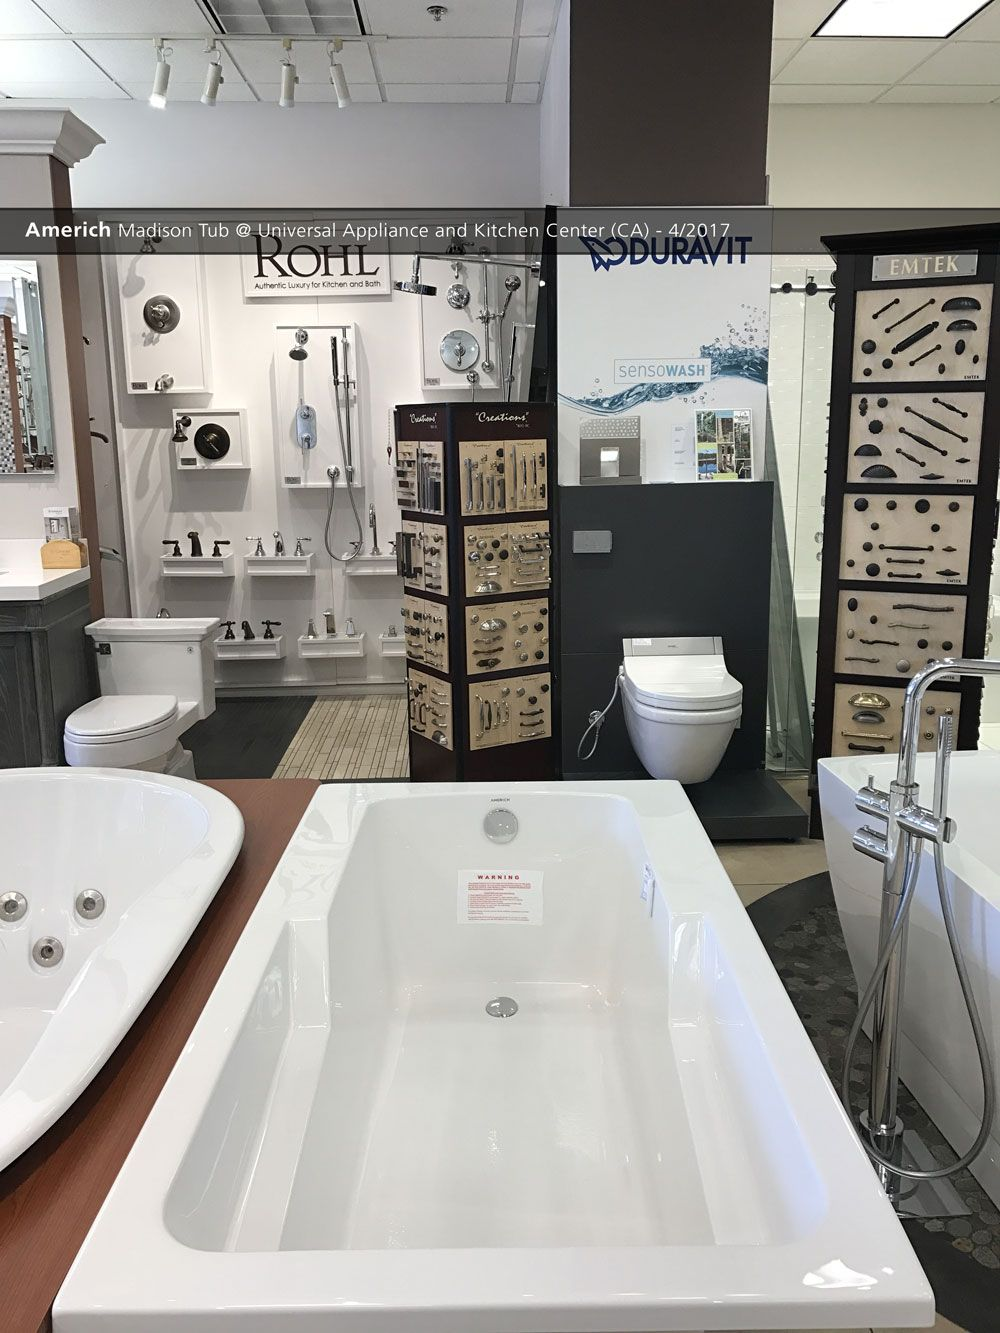 Americh Madison Tub @ Universal Appliance And Kitchen Center ...